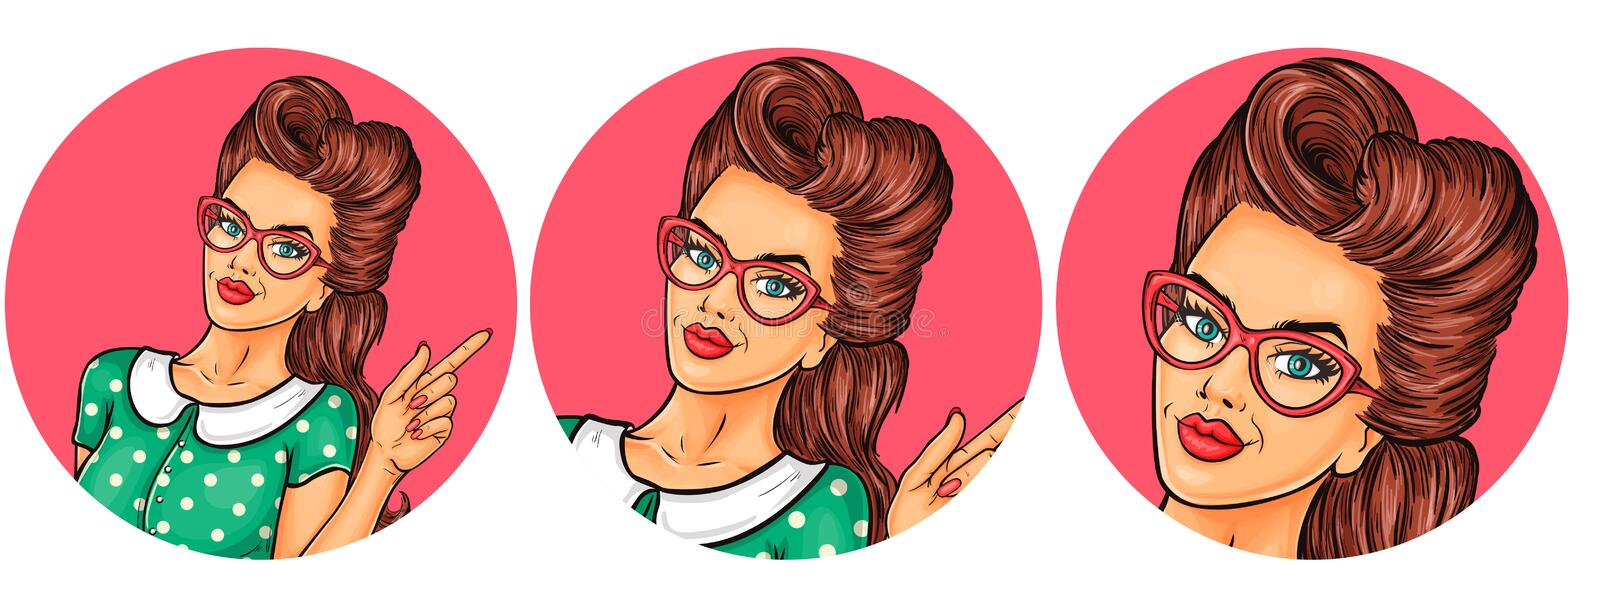 Set of vector illustration, womens pop art round avatars icons. Vector illustration, womens pop art round avatar icon for users of social networking, blogs. Girl royalty free illustration